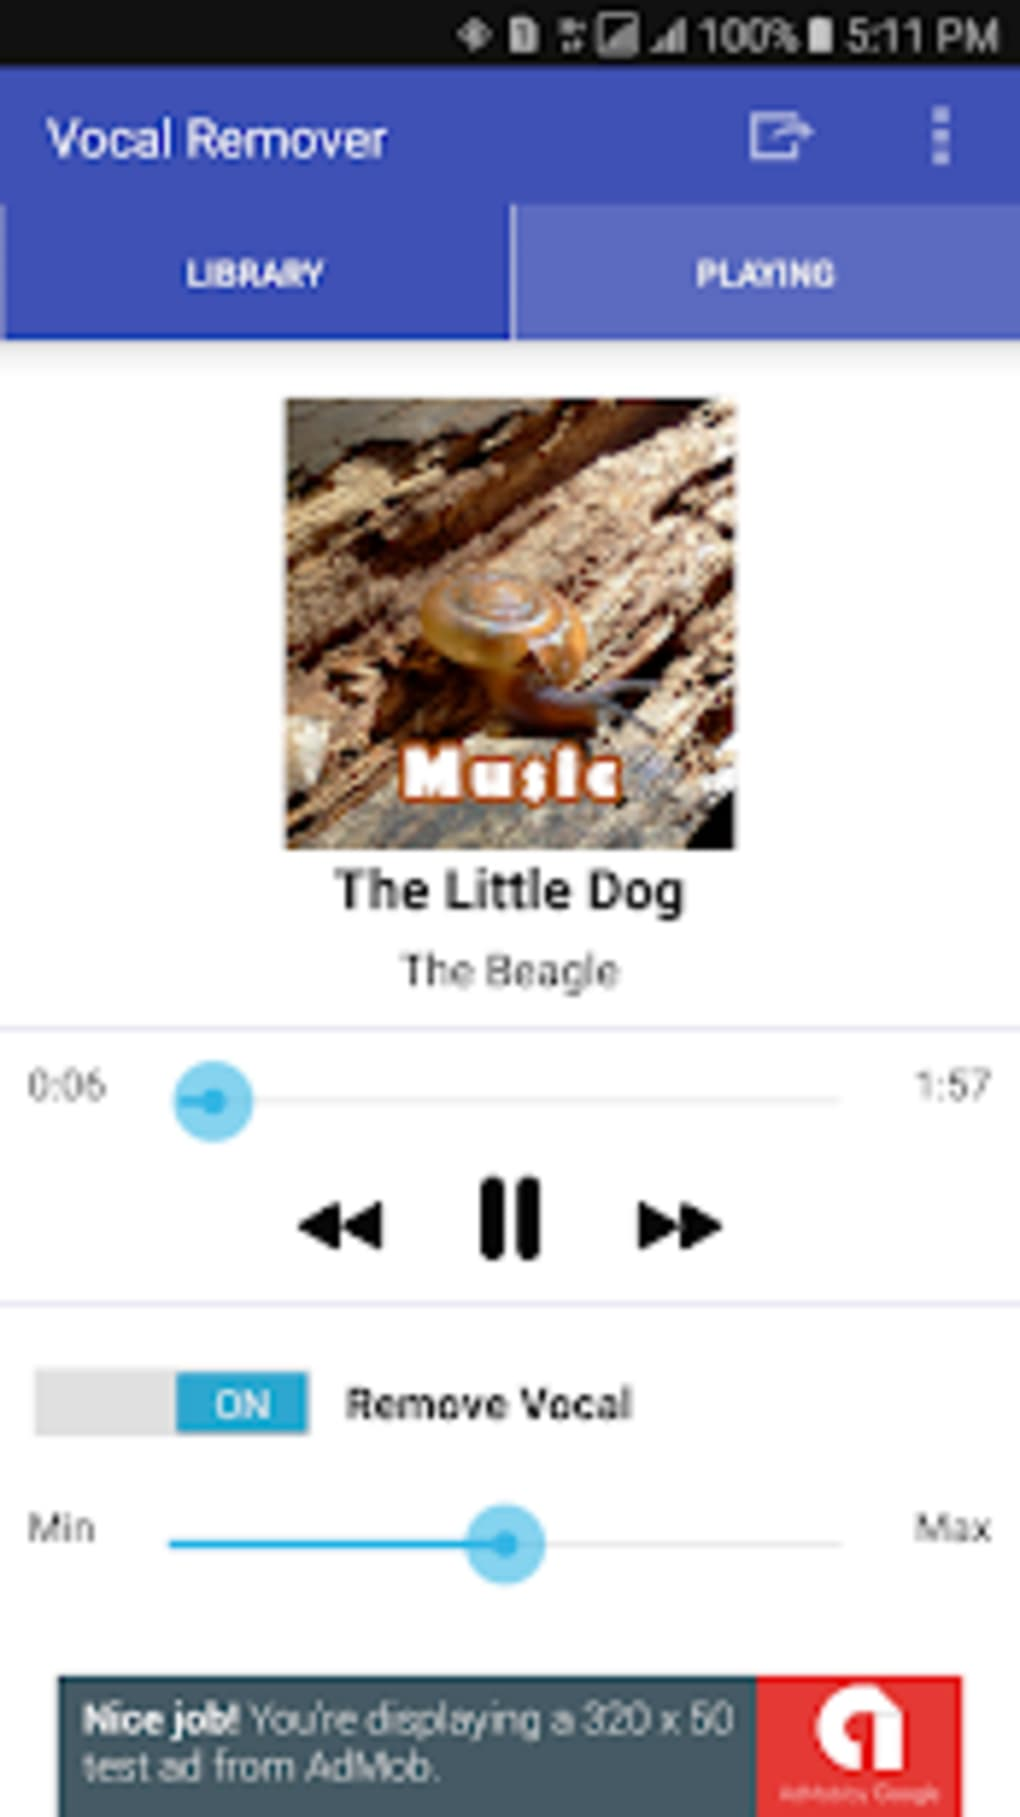 Vocal Remover for Karaoke for Android - Download